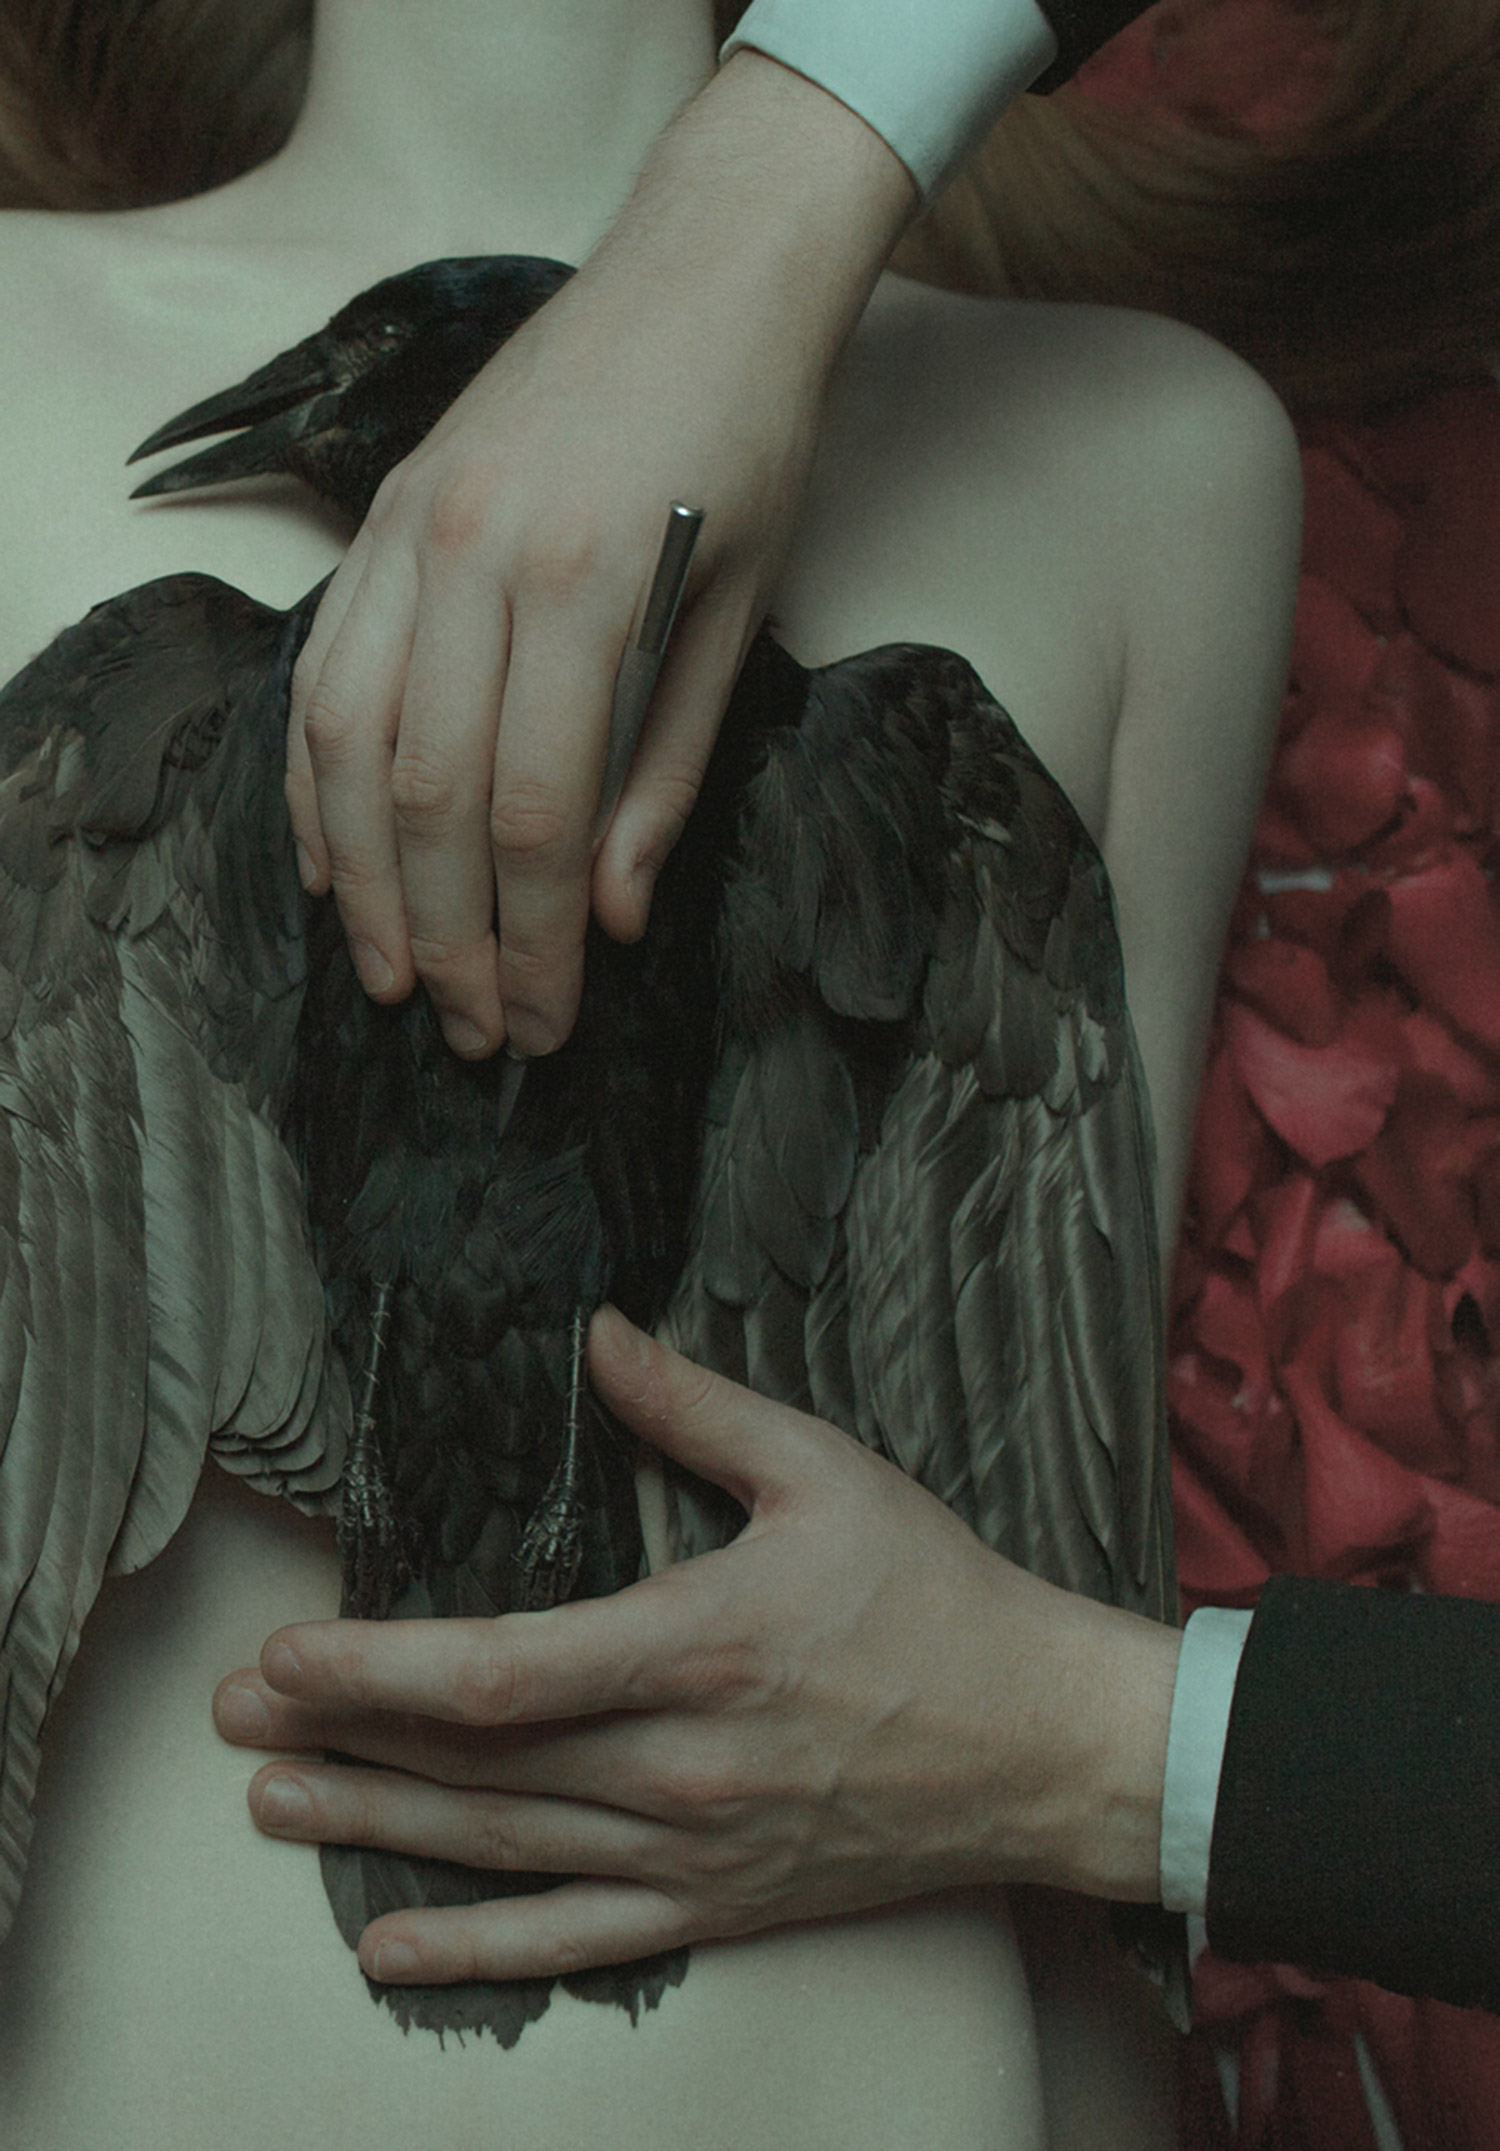 Laura Makabresku, Lessons of Darkness - dead bird laid on body